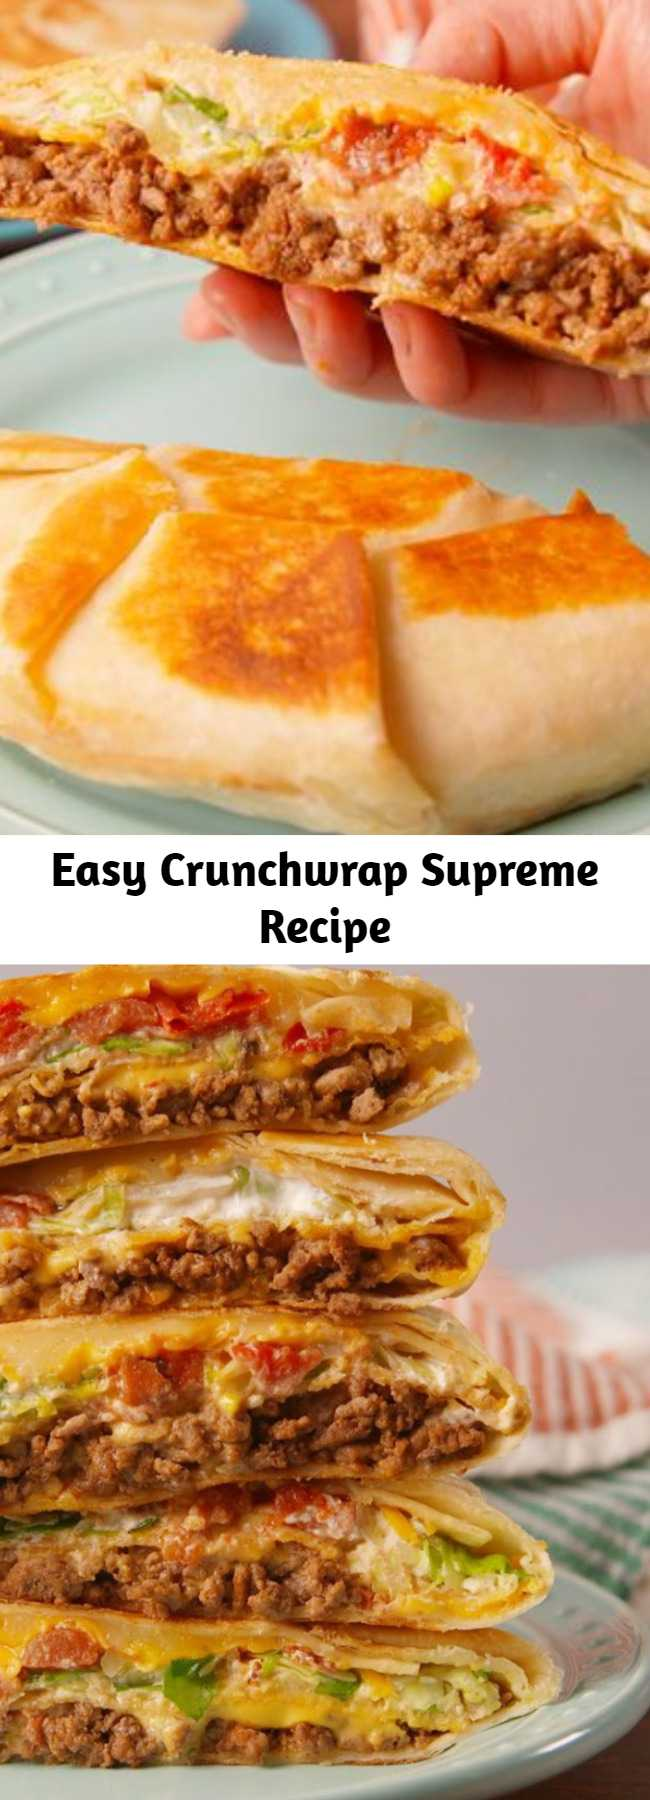 Easy Crunchwrap Supreme Recipe - Trust us, this is every bit as good as the real thing! This copycat recipe has all the main components of the iconic Taco Bell offering: seasoned ground beef, nacho cheese sauce, lettuce, tomatoes, sour cream, and, most importantly, a crunchy tostada shell. #easy #recipe #tacobell #crunchwrapsupreme #beef #nacho #cheese #tortilla #mexicanfood #copycat